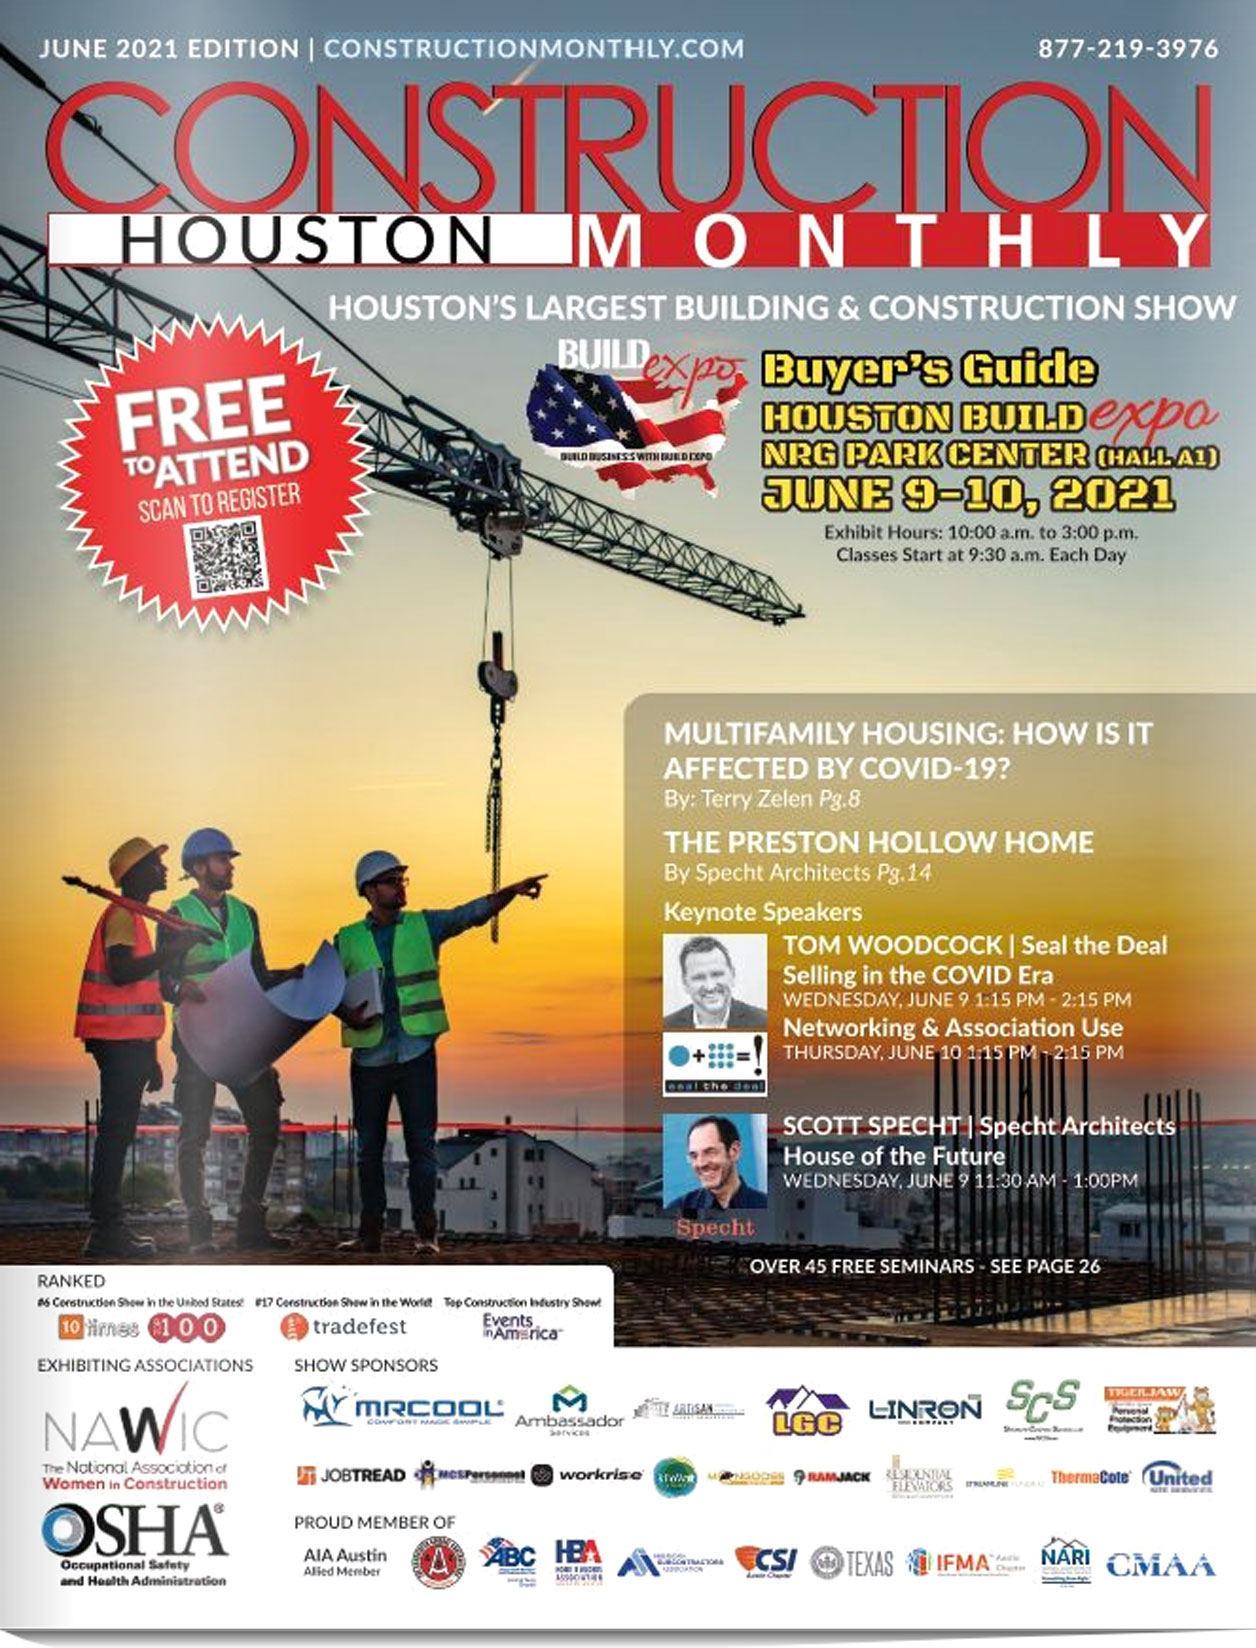 Dallas Construction Monthly